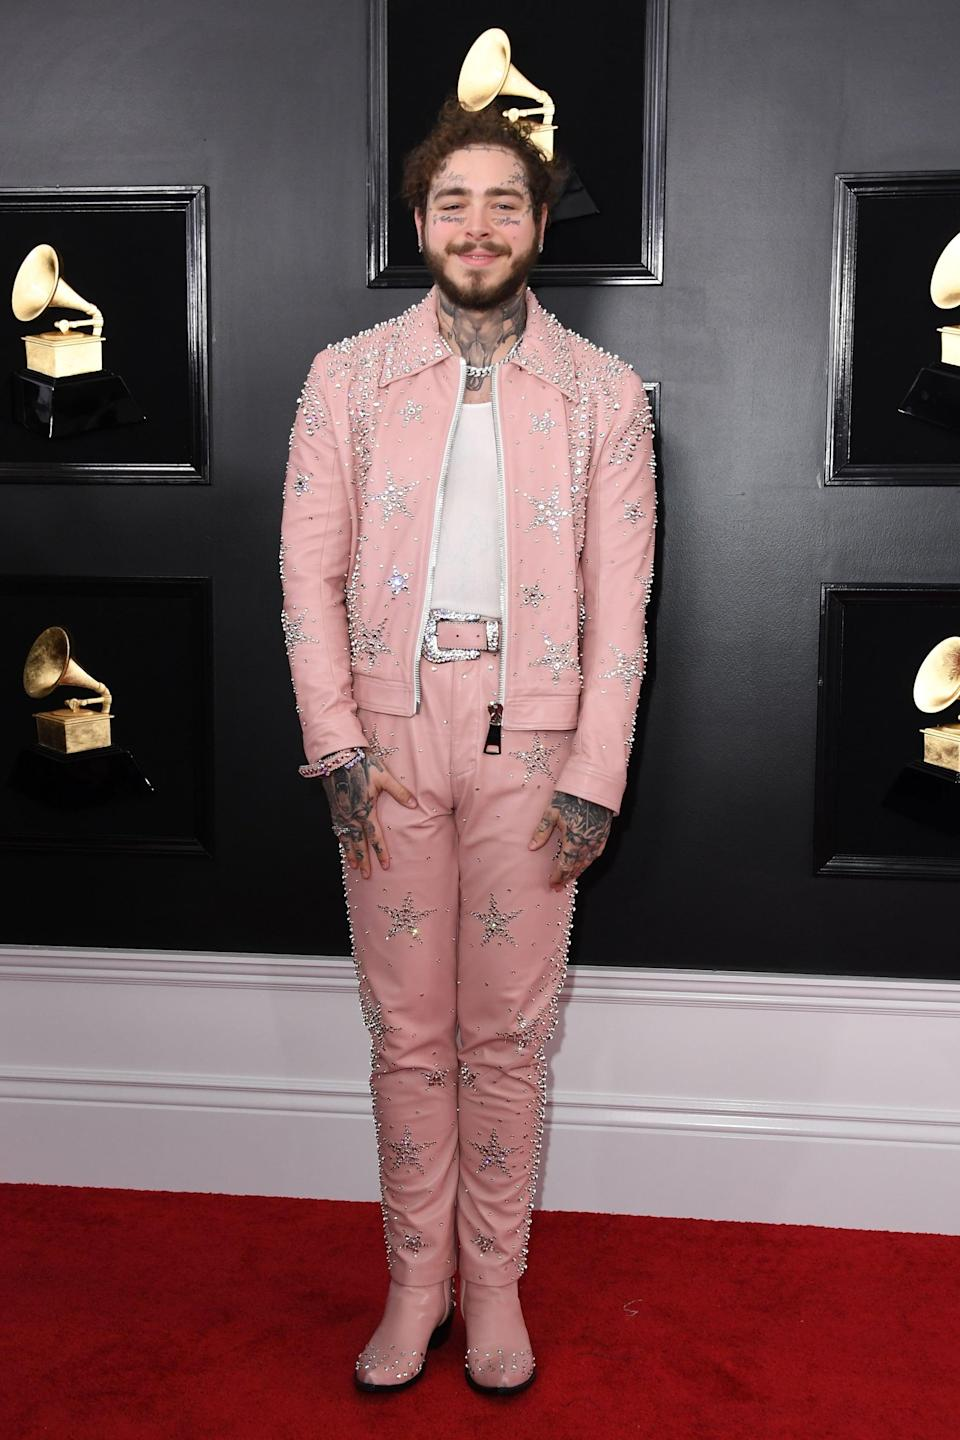 <p>Wearing a pink embellished suit.</p>